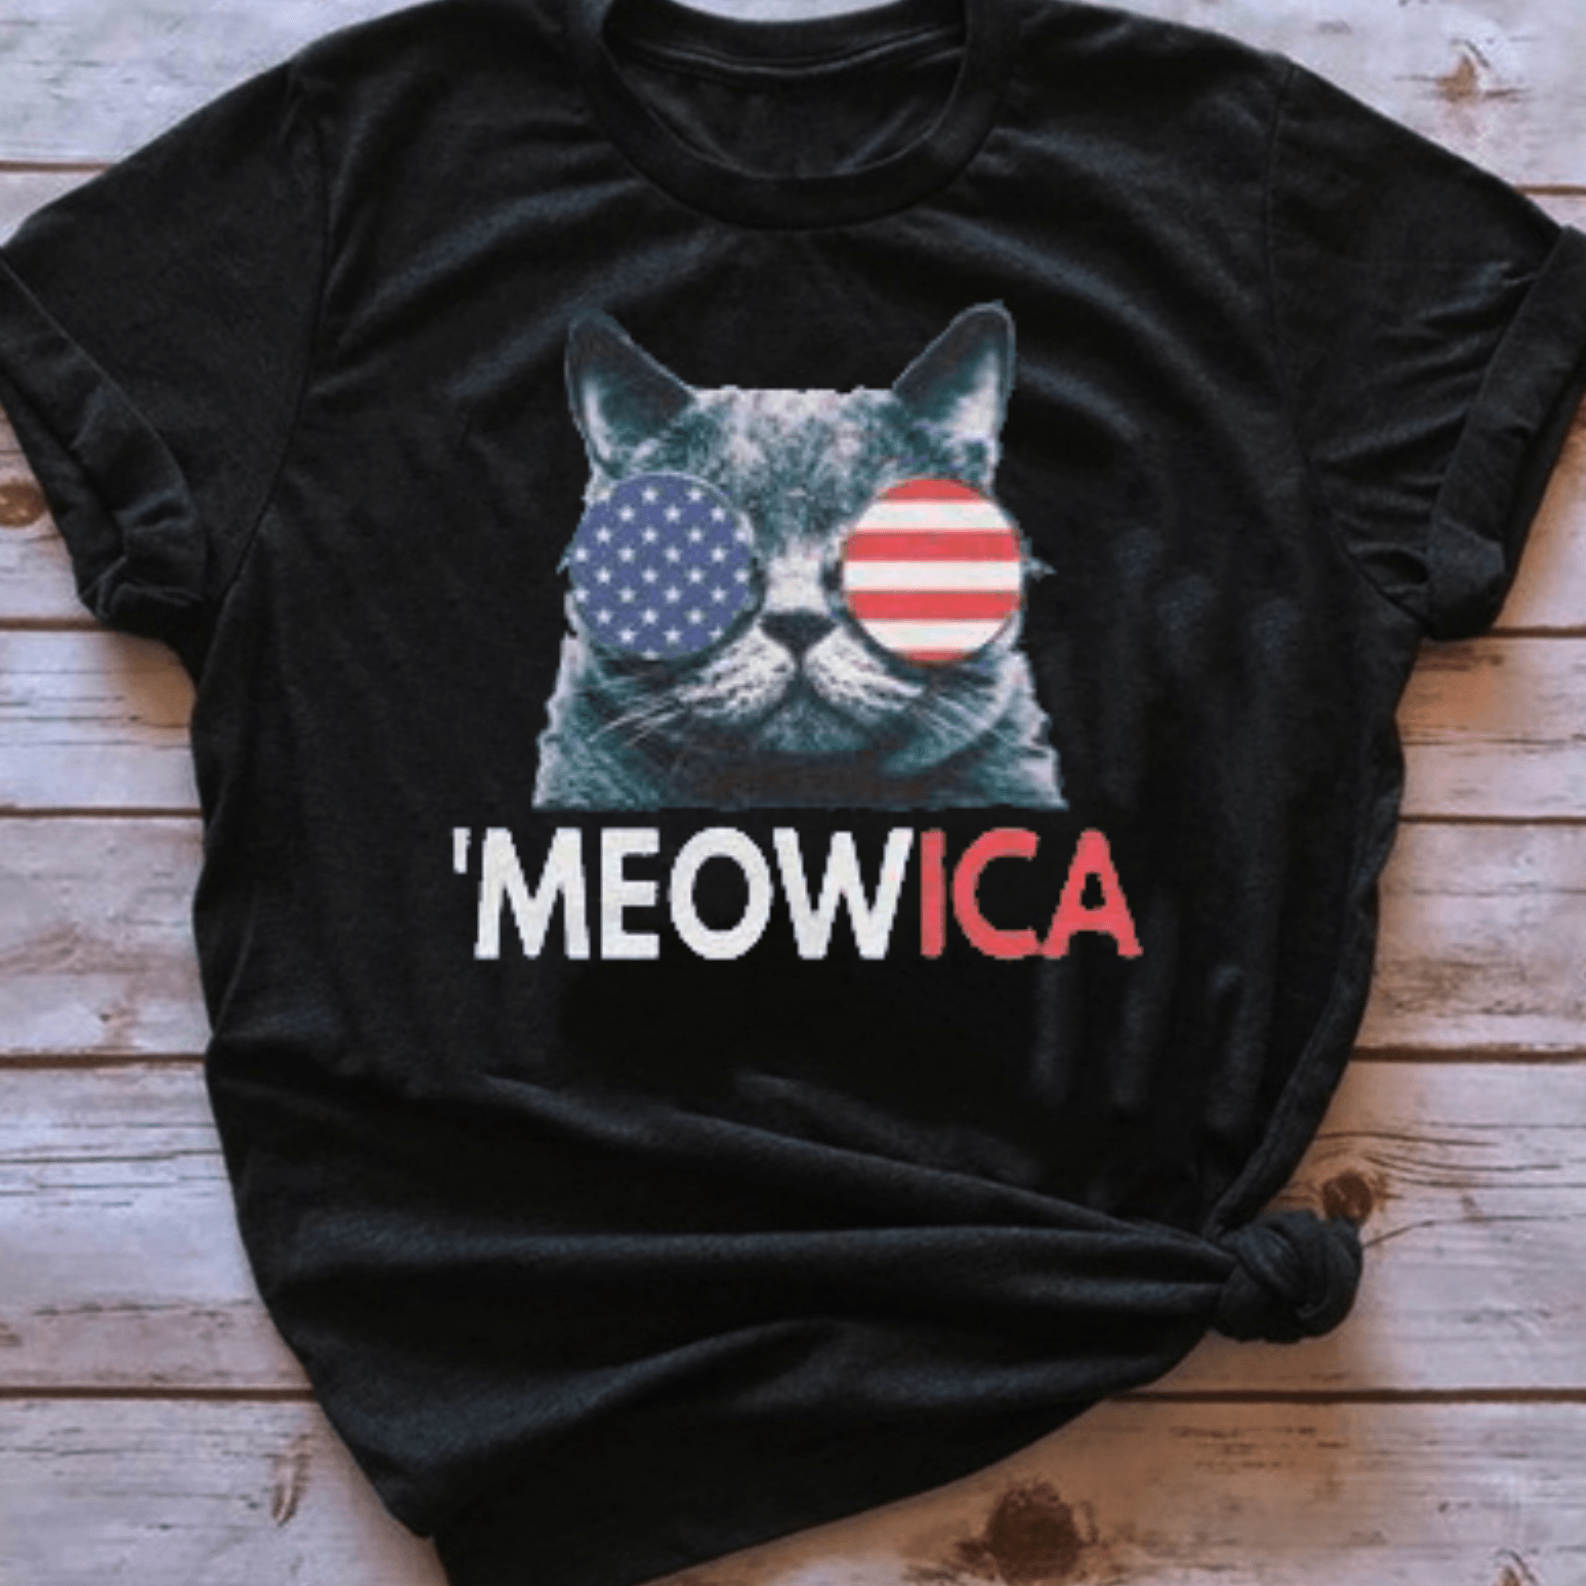 'MEOWICA Patriotic Cat Graphic Tee